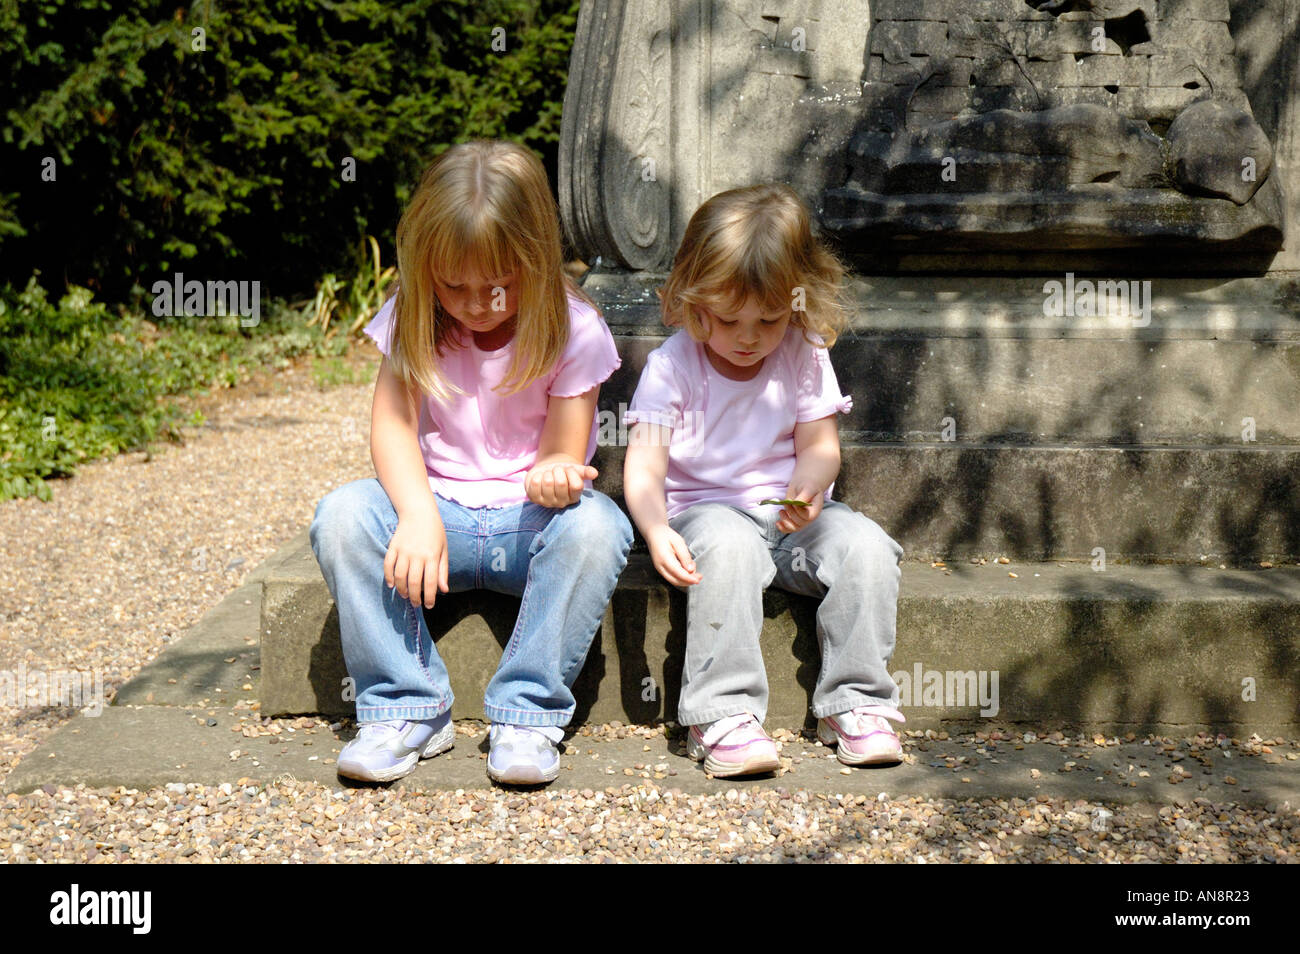 Two girls sitting on statue step. Stock Photo